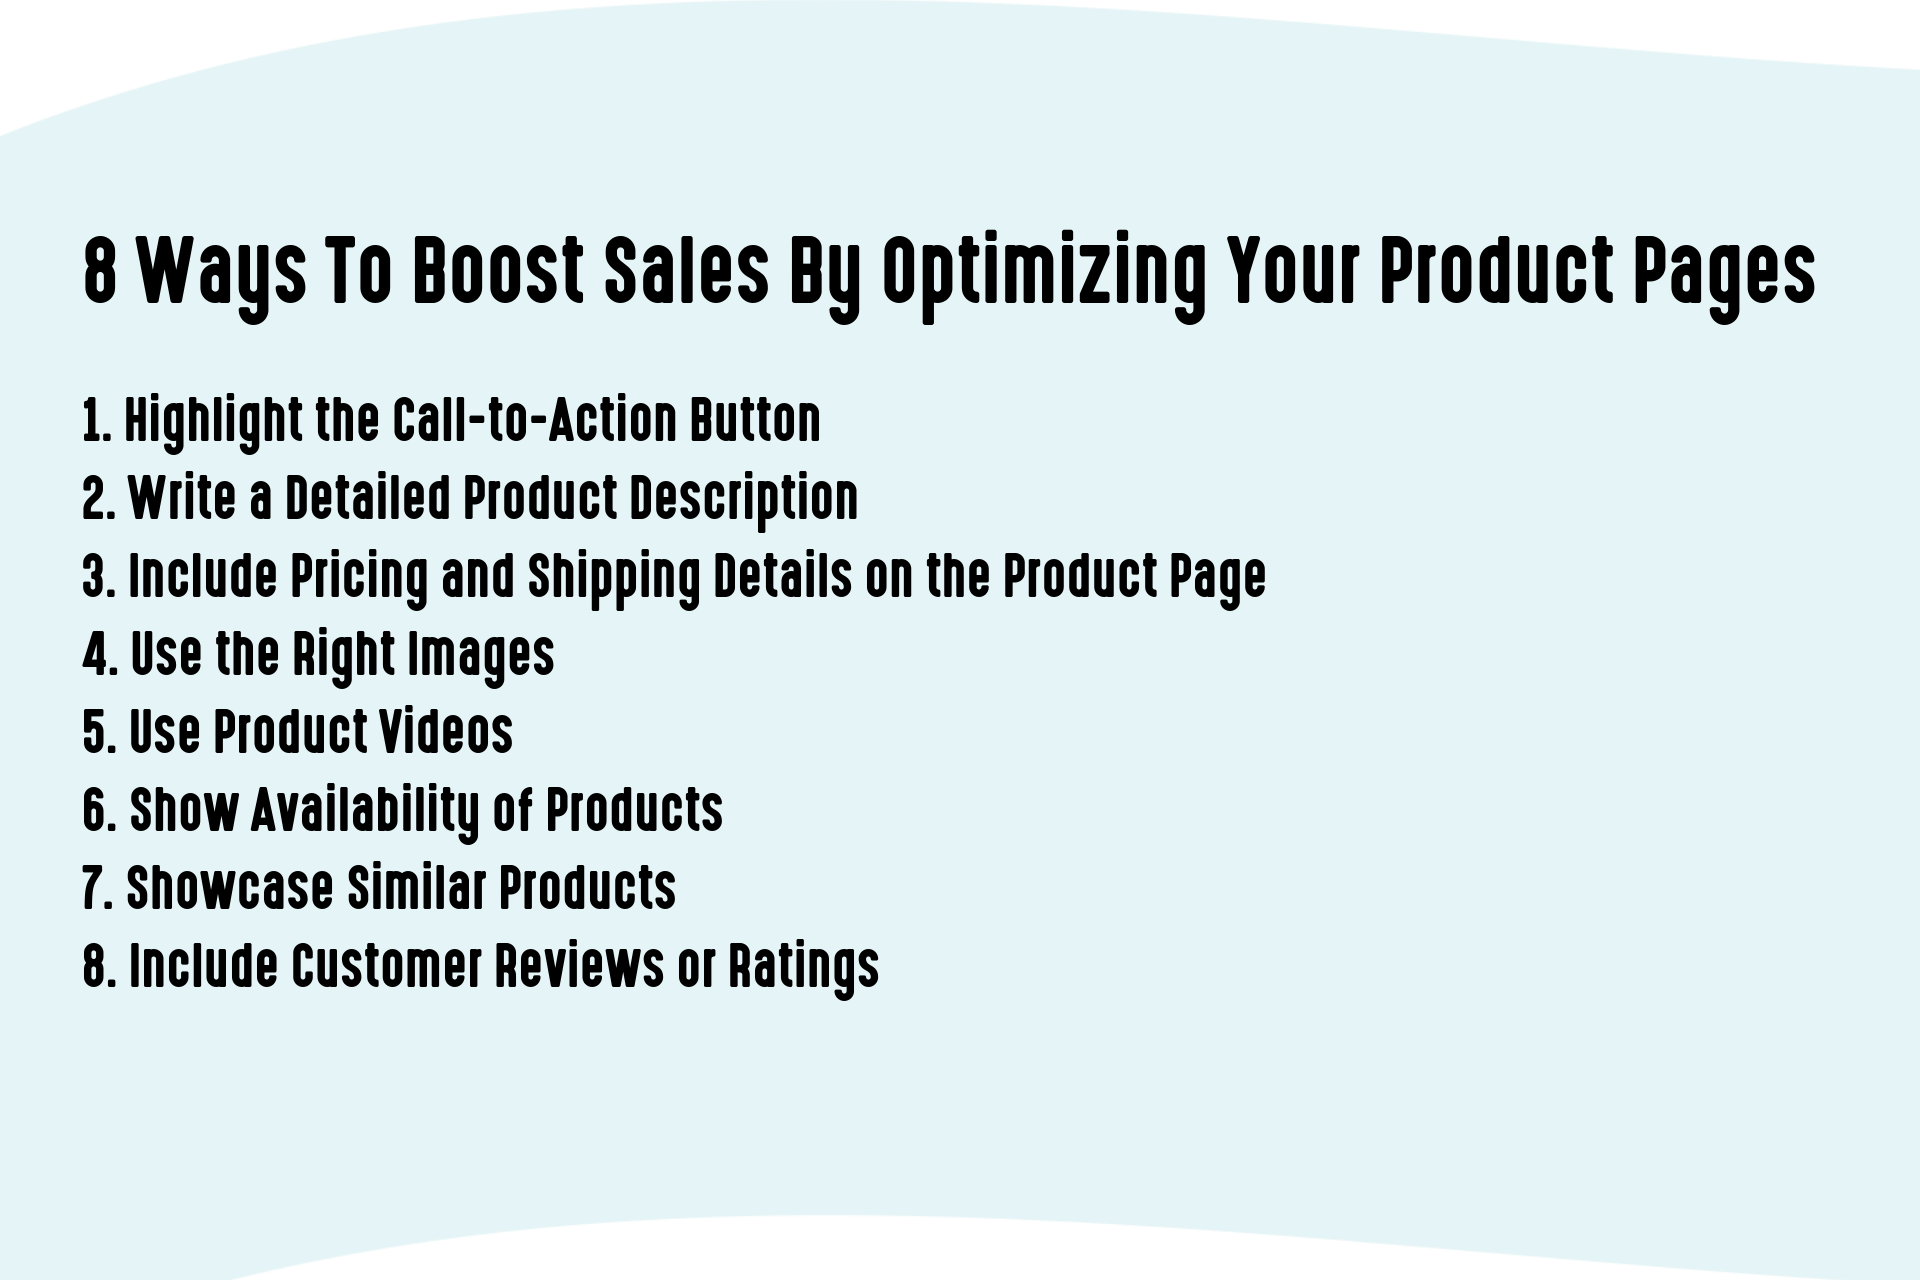 8 Ways To Boost Sales by Optimizing Your Product Pages (1)